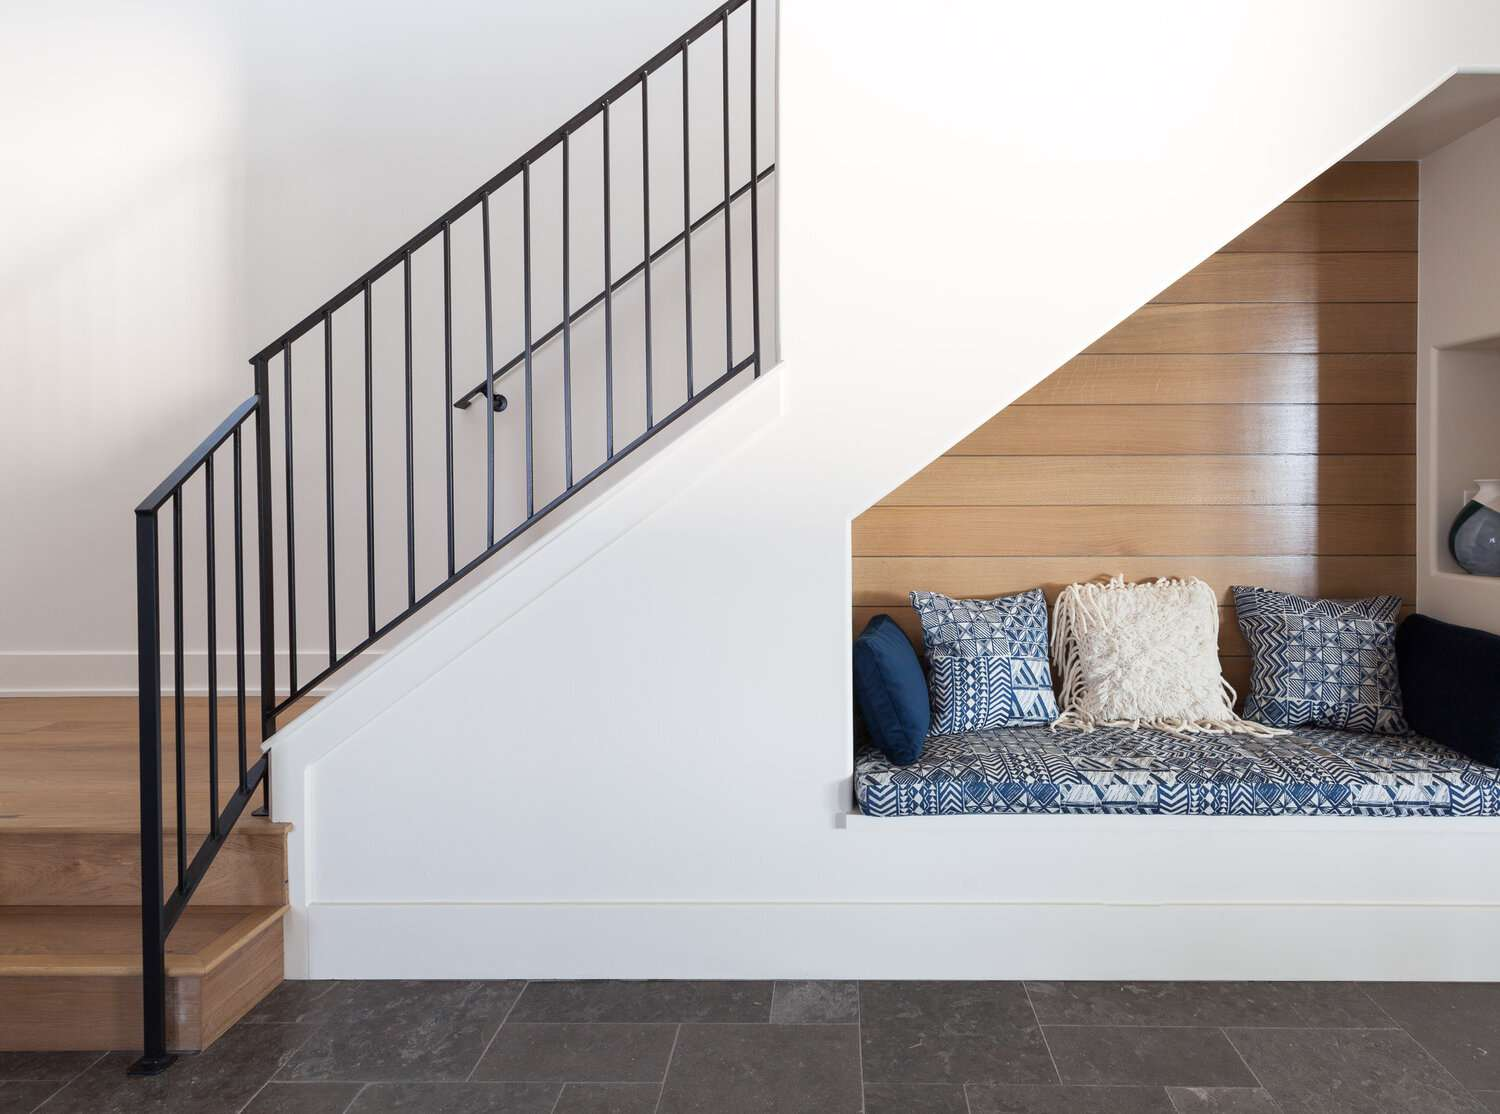 entryway that has sitting nook craved out in side of staircase